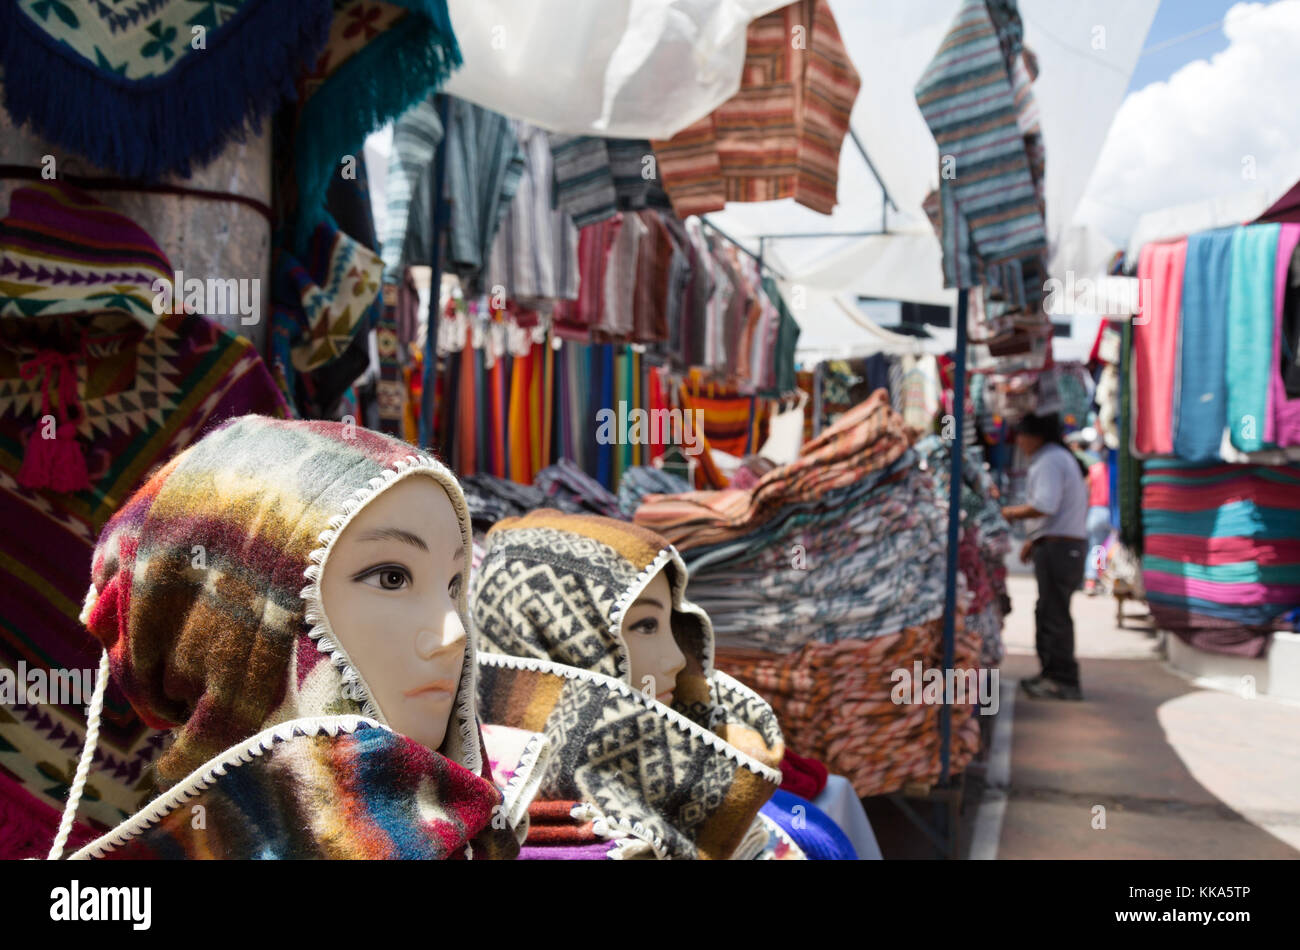 Otavalo market Ecuador, colourful textiles for sale in a market stall, Otavalo market, northern Ecuador, South America - Stock Image